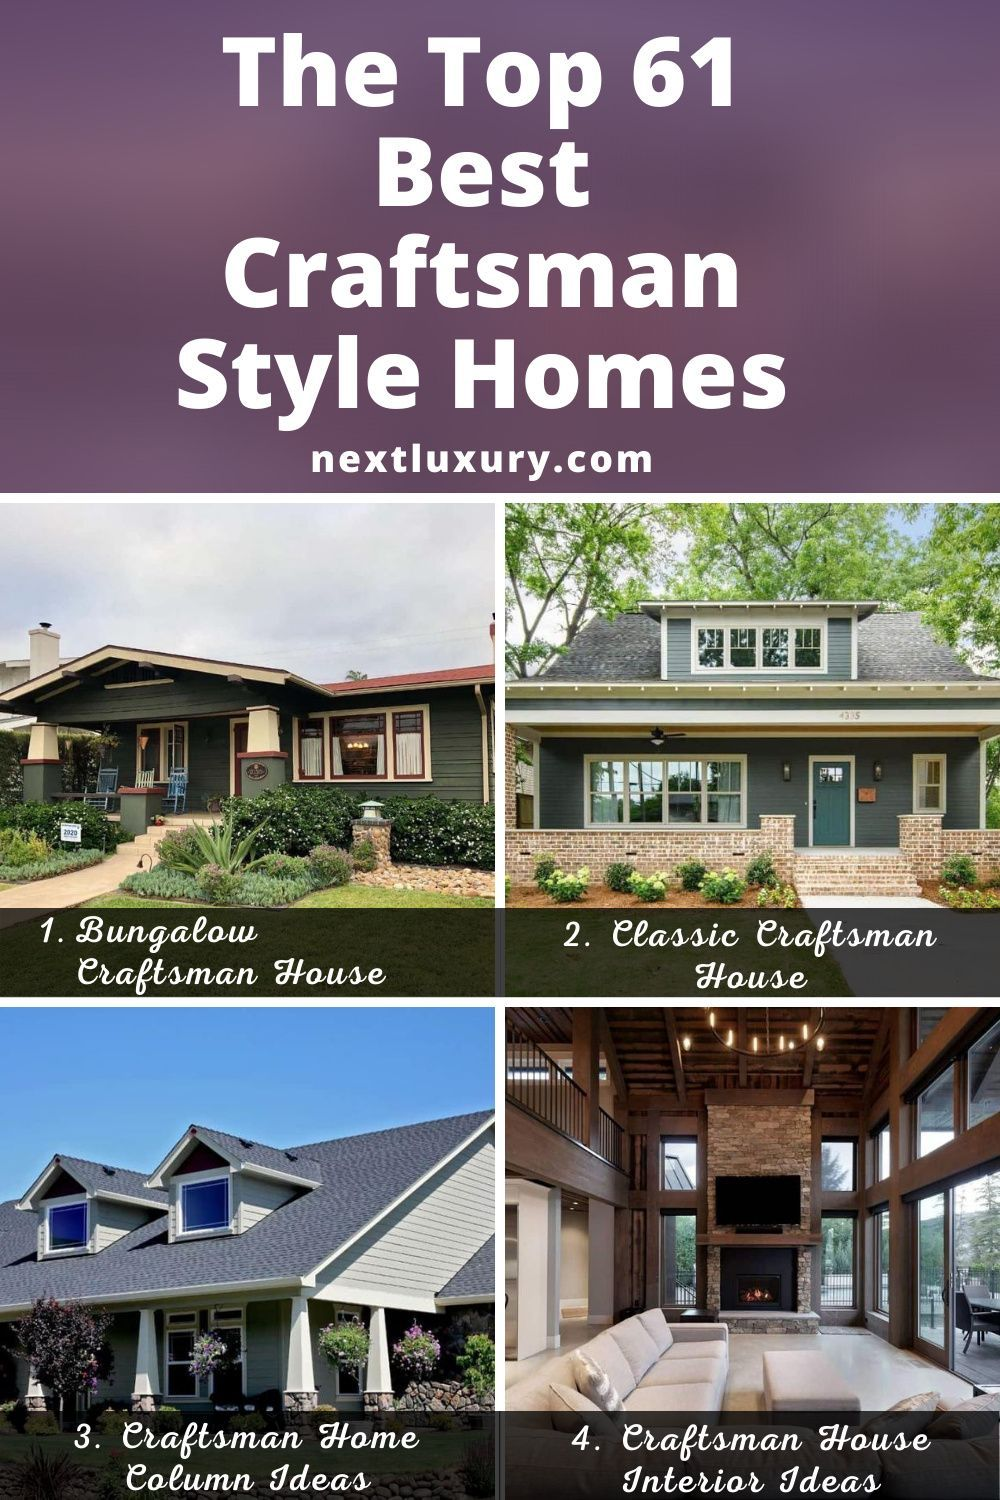 The Top 61 Best Craftsman Style Homes Home Design Next Luxury In 2020 Craftsman Style Homes Craftsman House House Columns